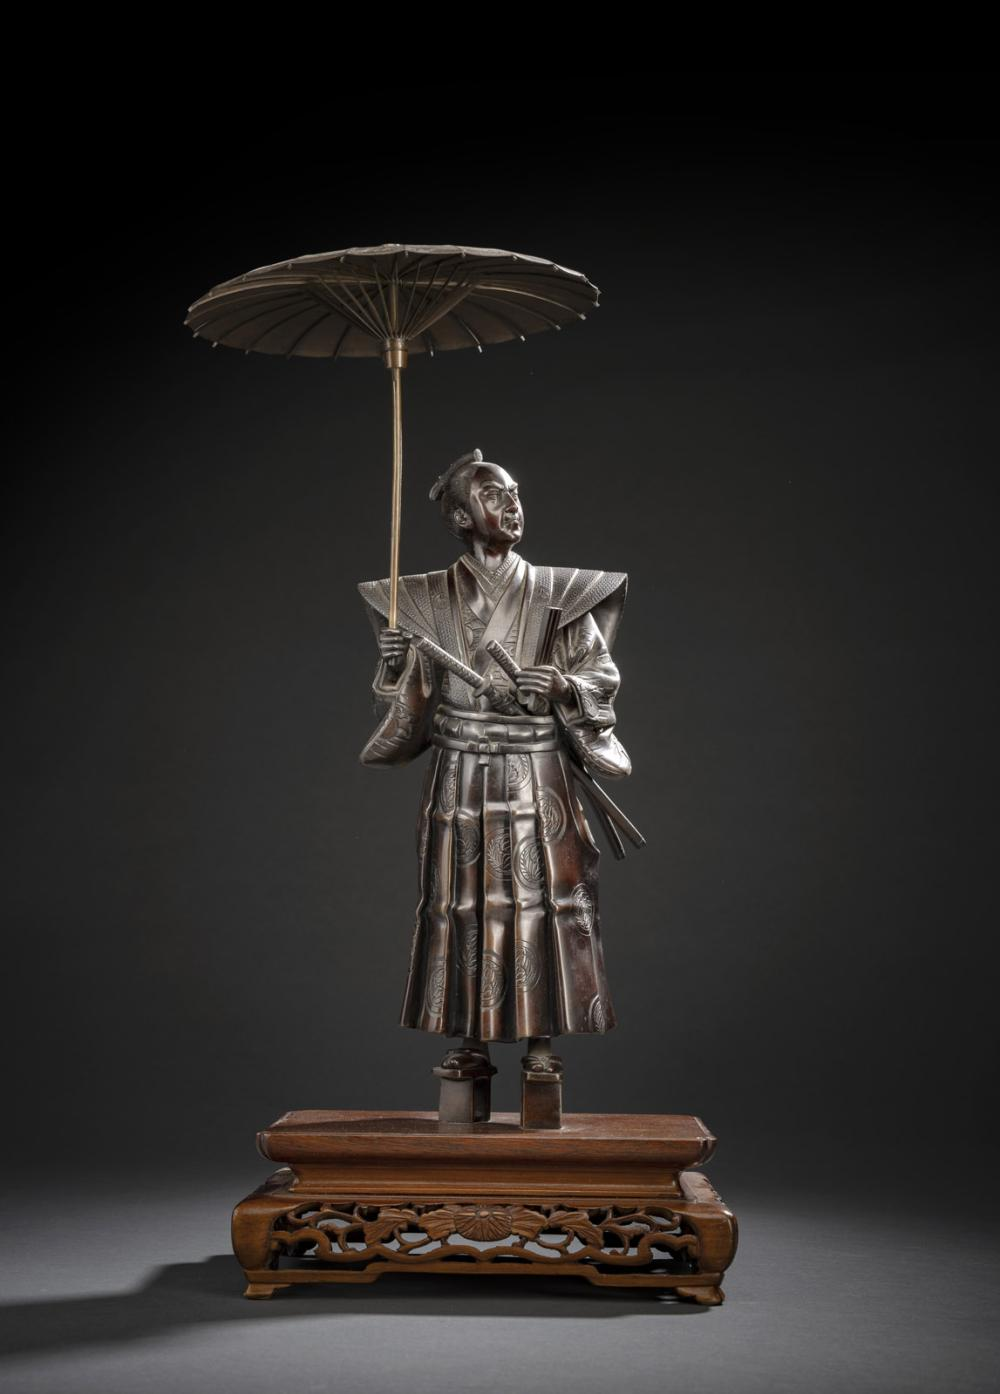 A BRONZE FIGUR OF A STANDING COURTIER HOLDING AN OPEN PARASOL AND A FAN